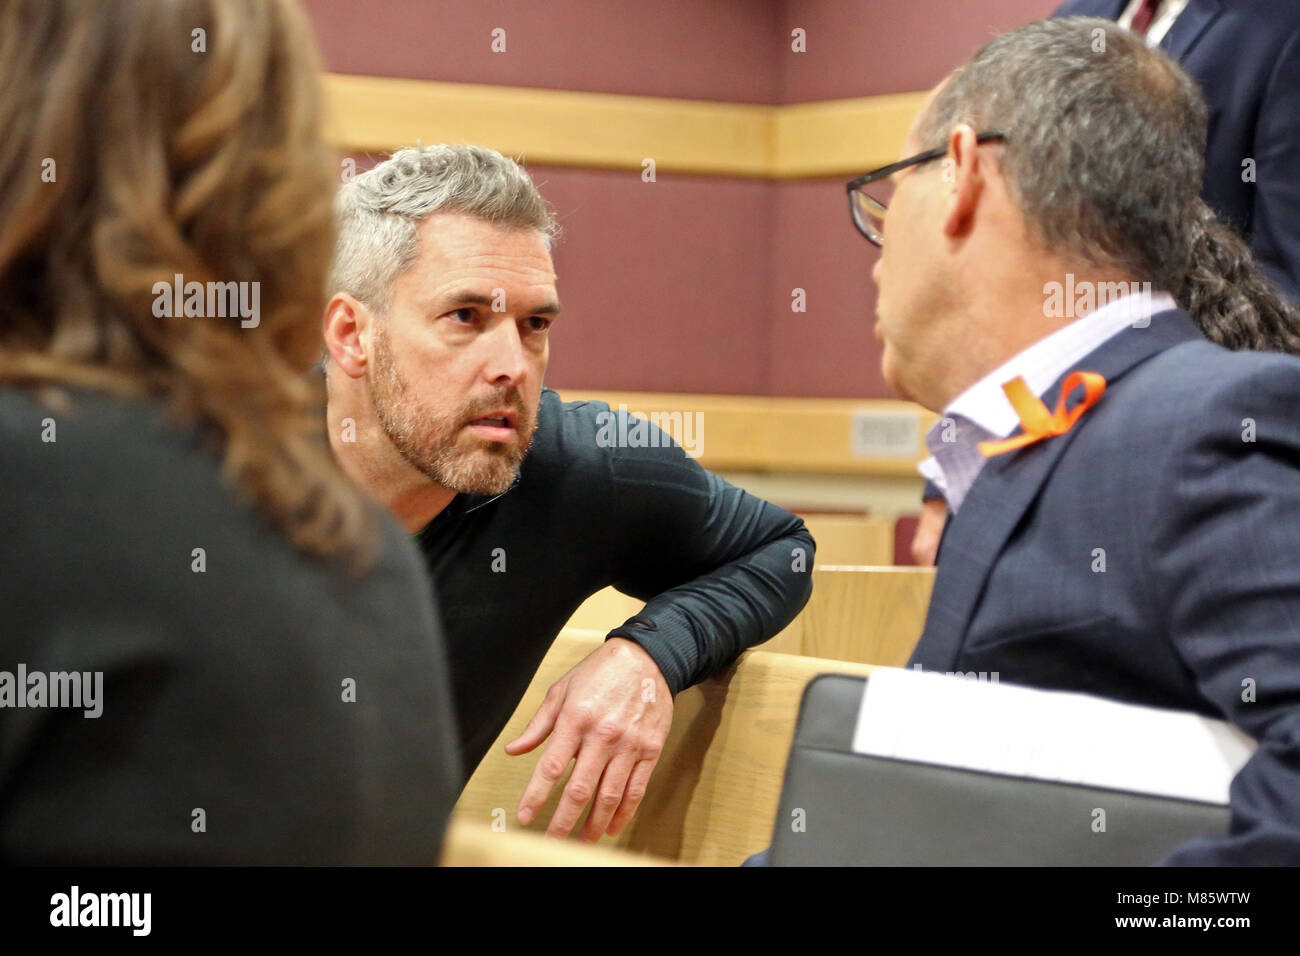 Arraignment Jpg Stock Photos Arraignment Jpg Stock Images Alamy